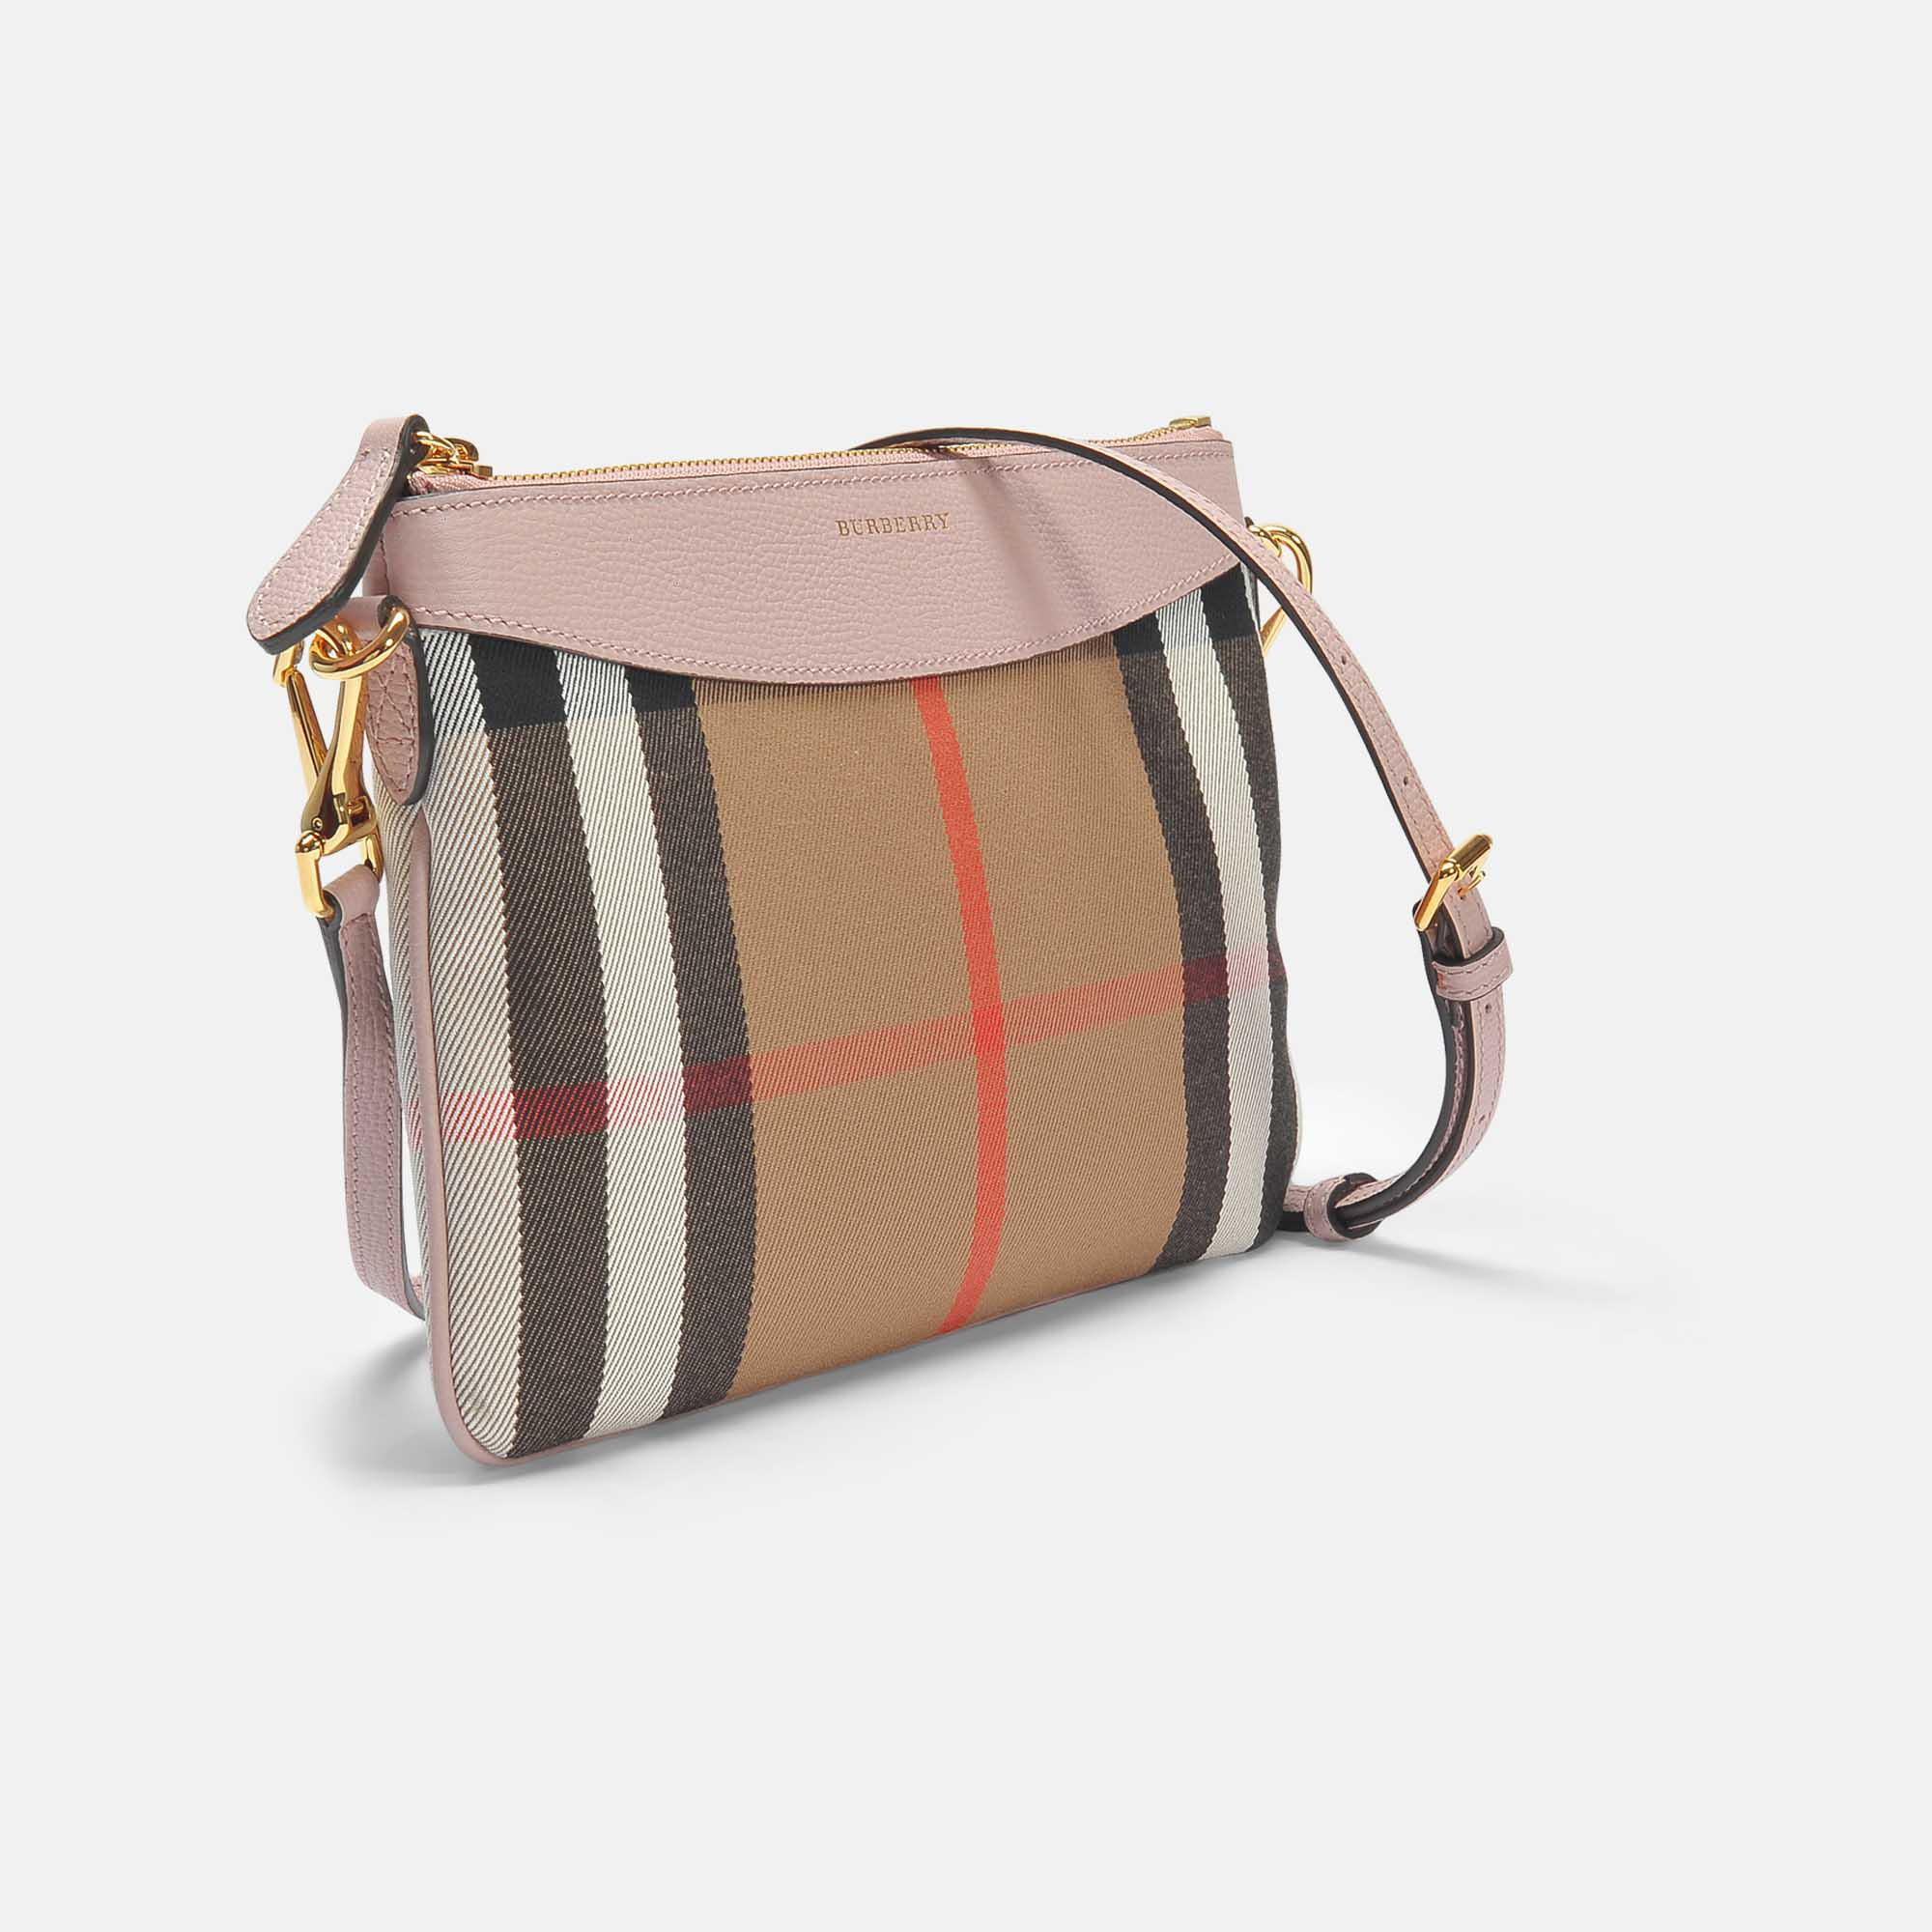 8f3f37491b5a Lyst - Burberry Peyton Pouch Bag In Pale Orchid Grained Calfskin